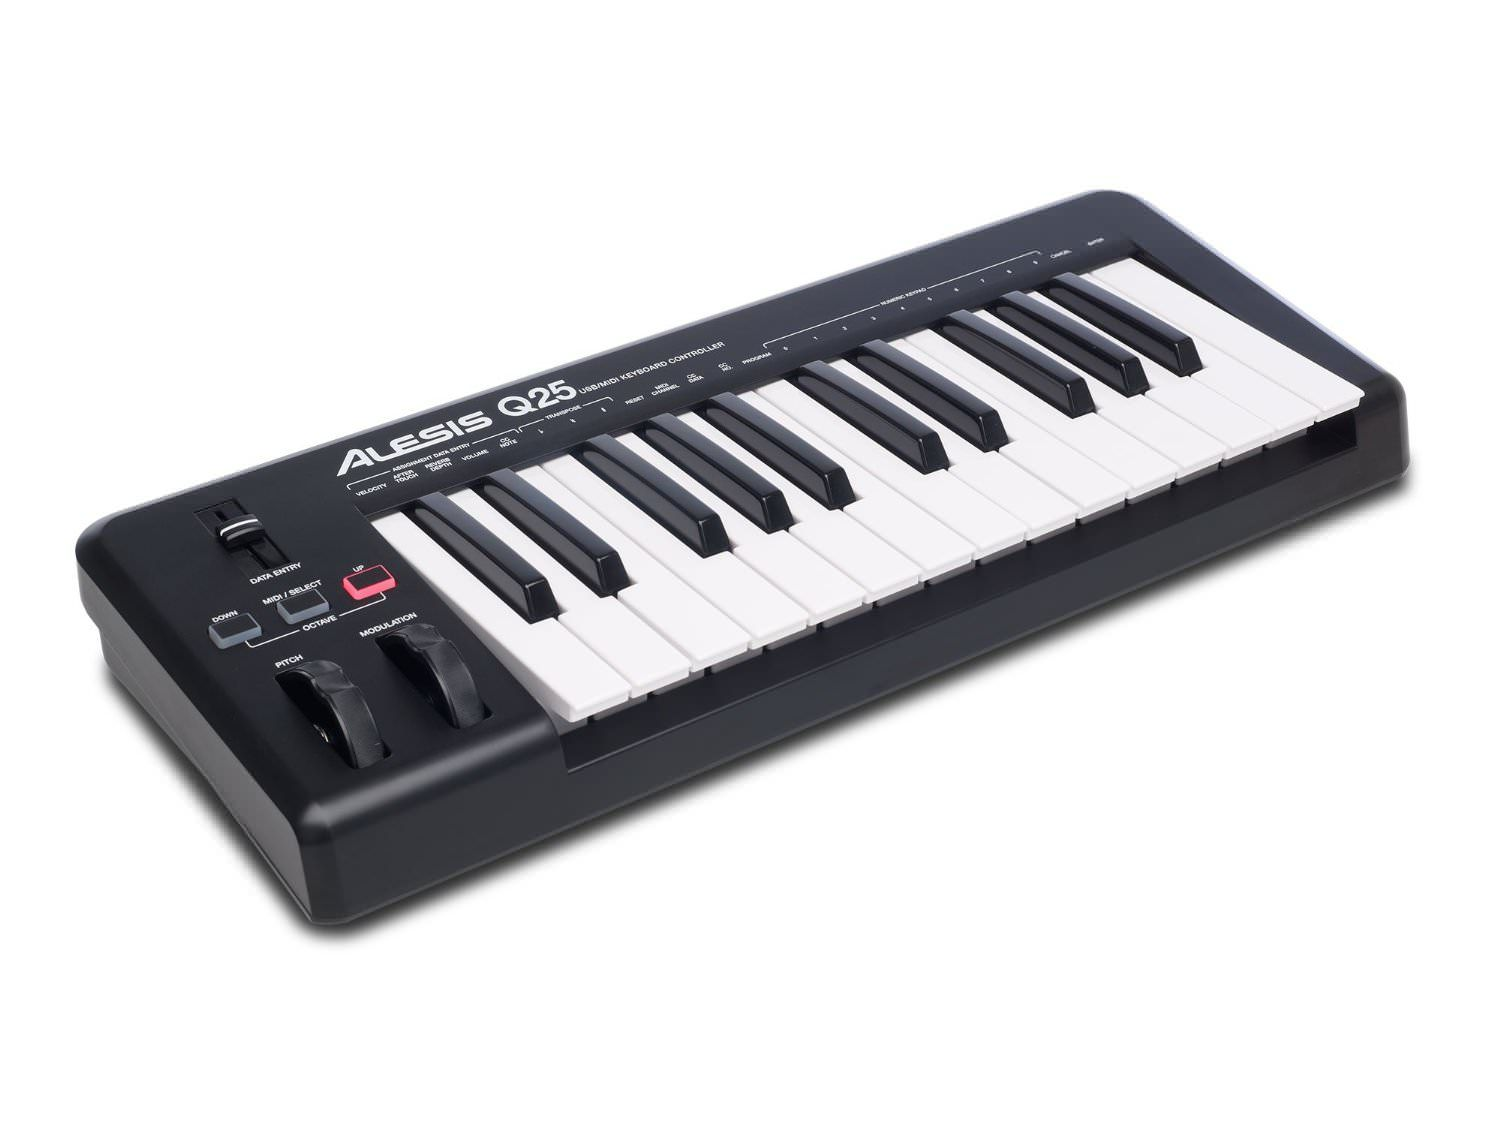 alesis q25 25 key keyboard midi controller review laptop usb midi keyboard controller home. Black Bedroom Furniture Sets. Home Design Ideas